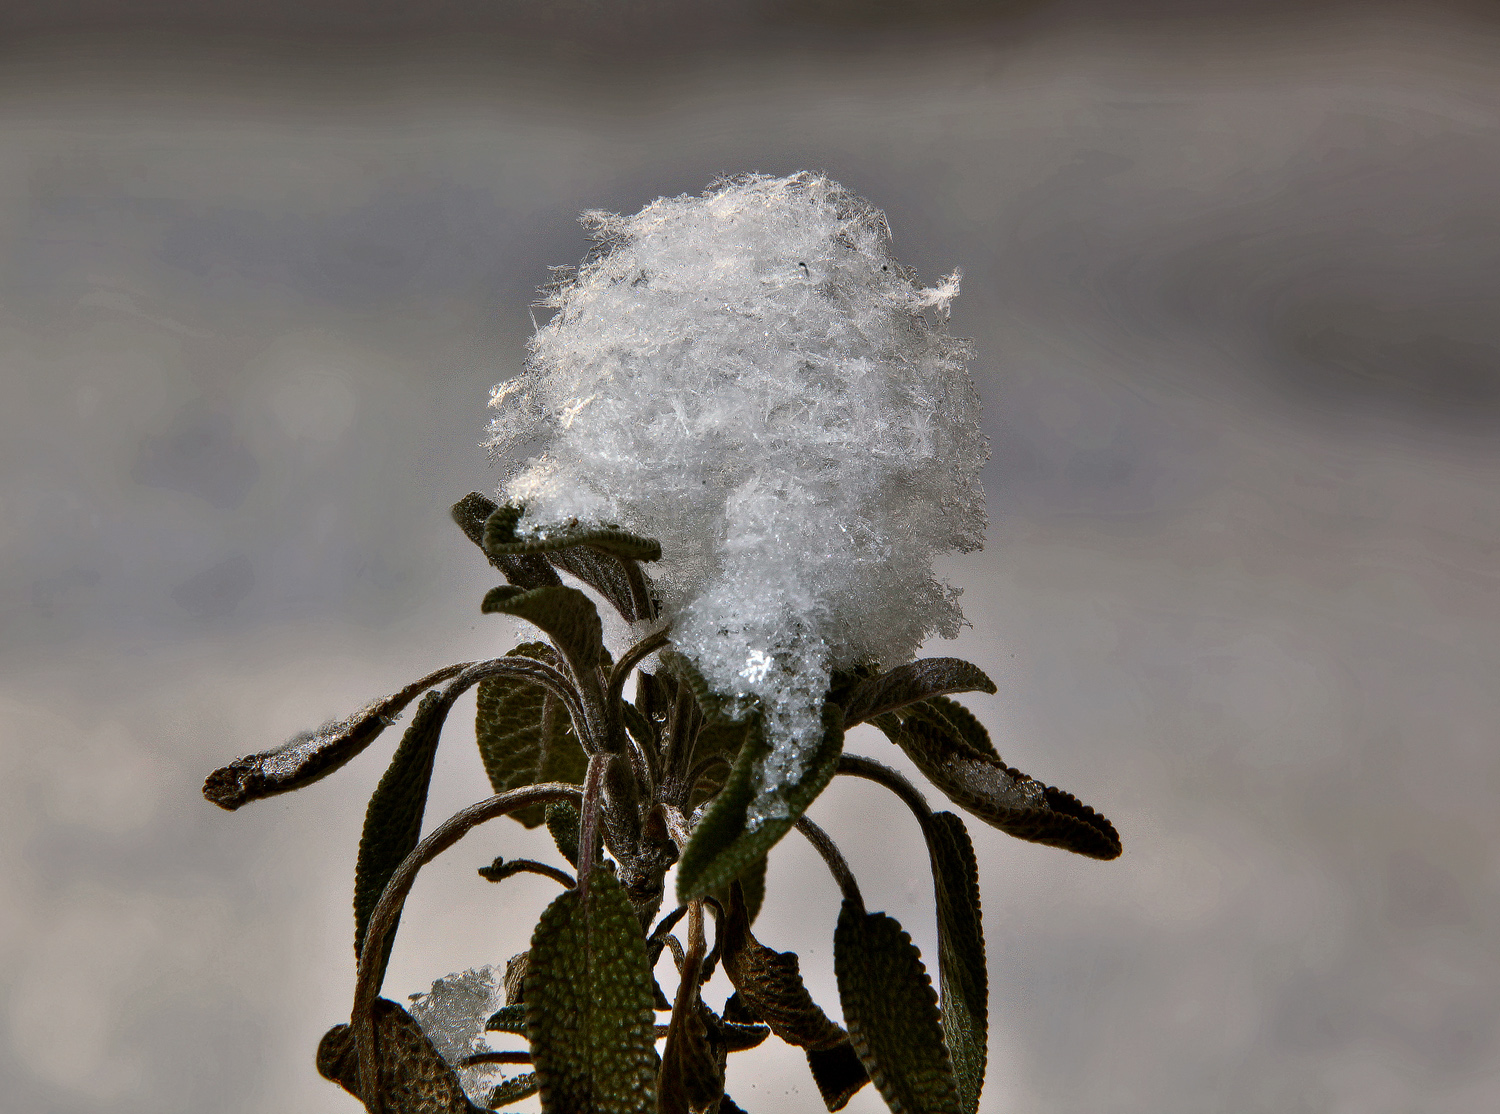 snow capped sage img aw author sava gregory and v verena